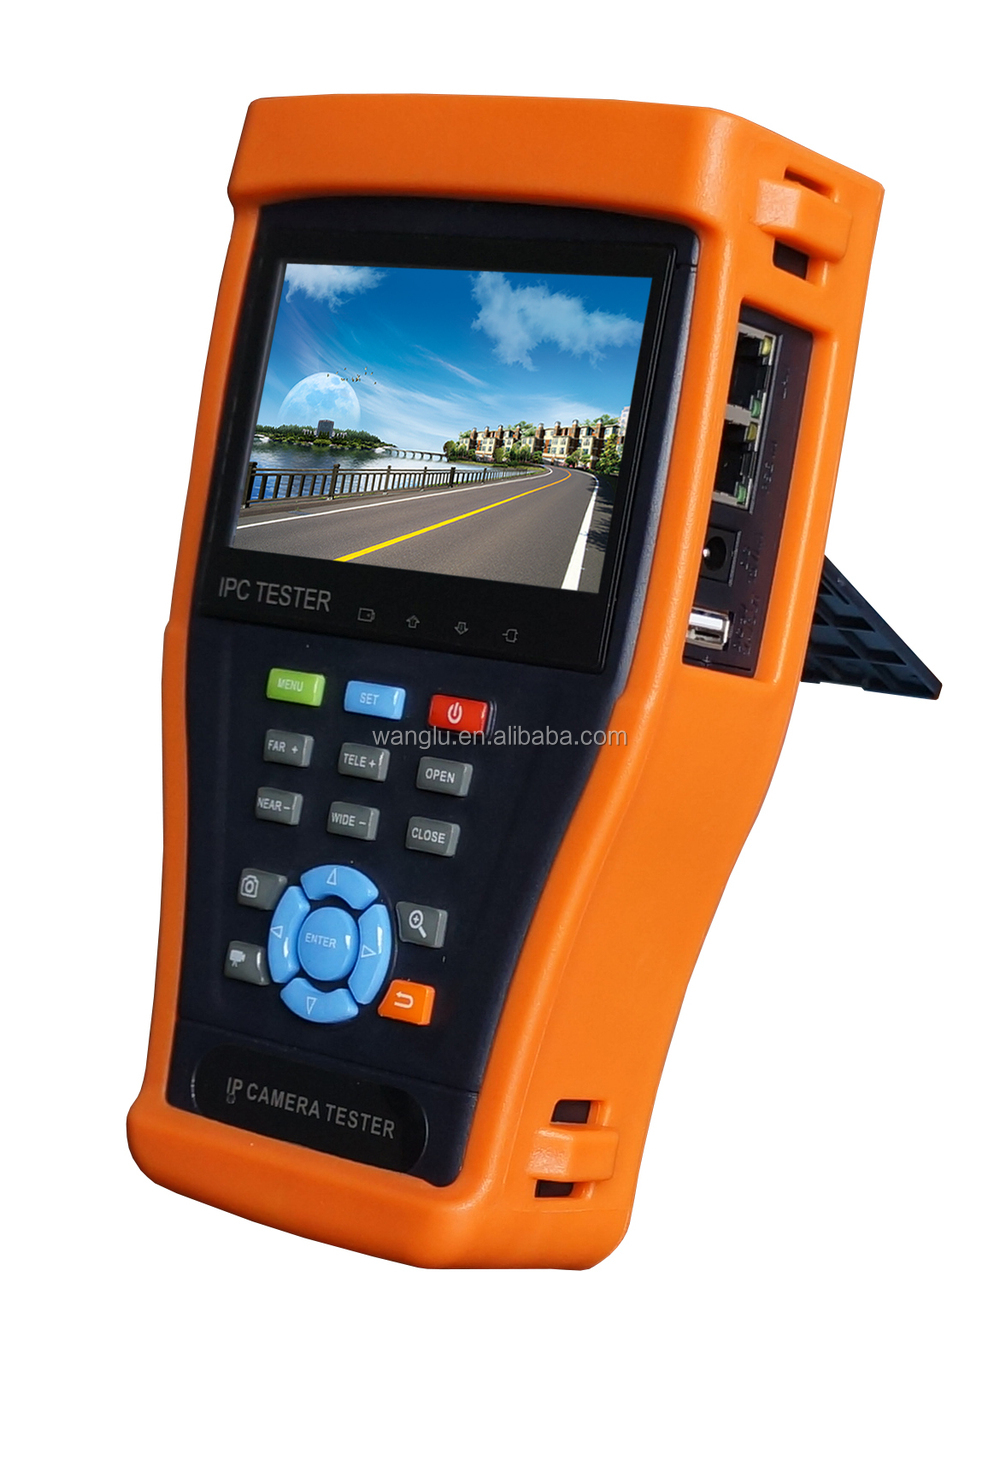 4.3 inch all in one cctv tester for IP TVI CVI AHD SDI and analog camera testing